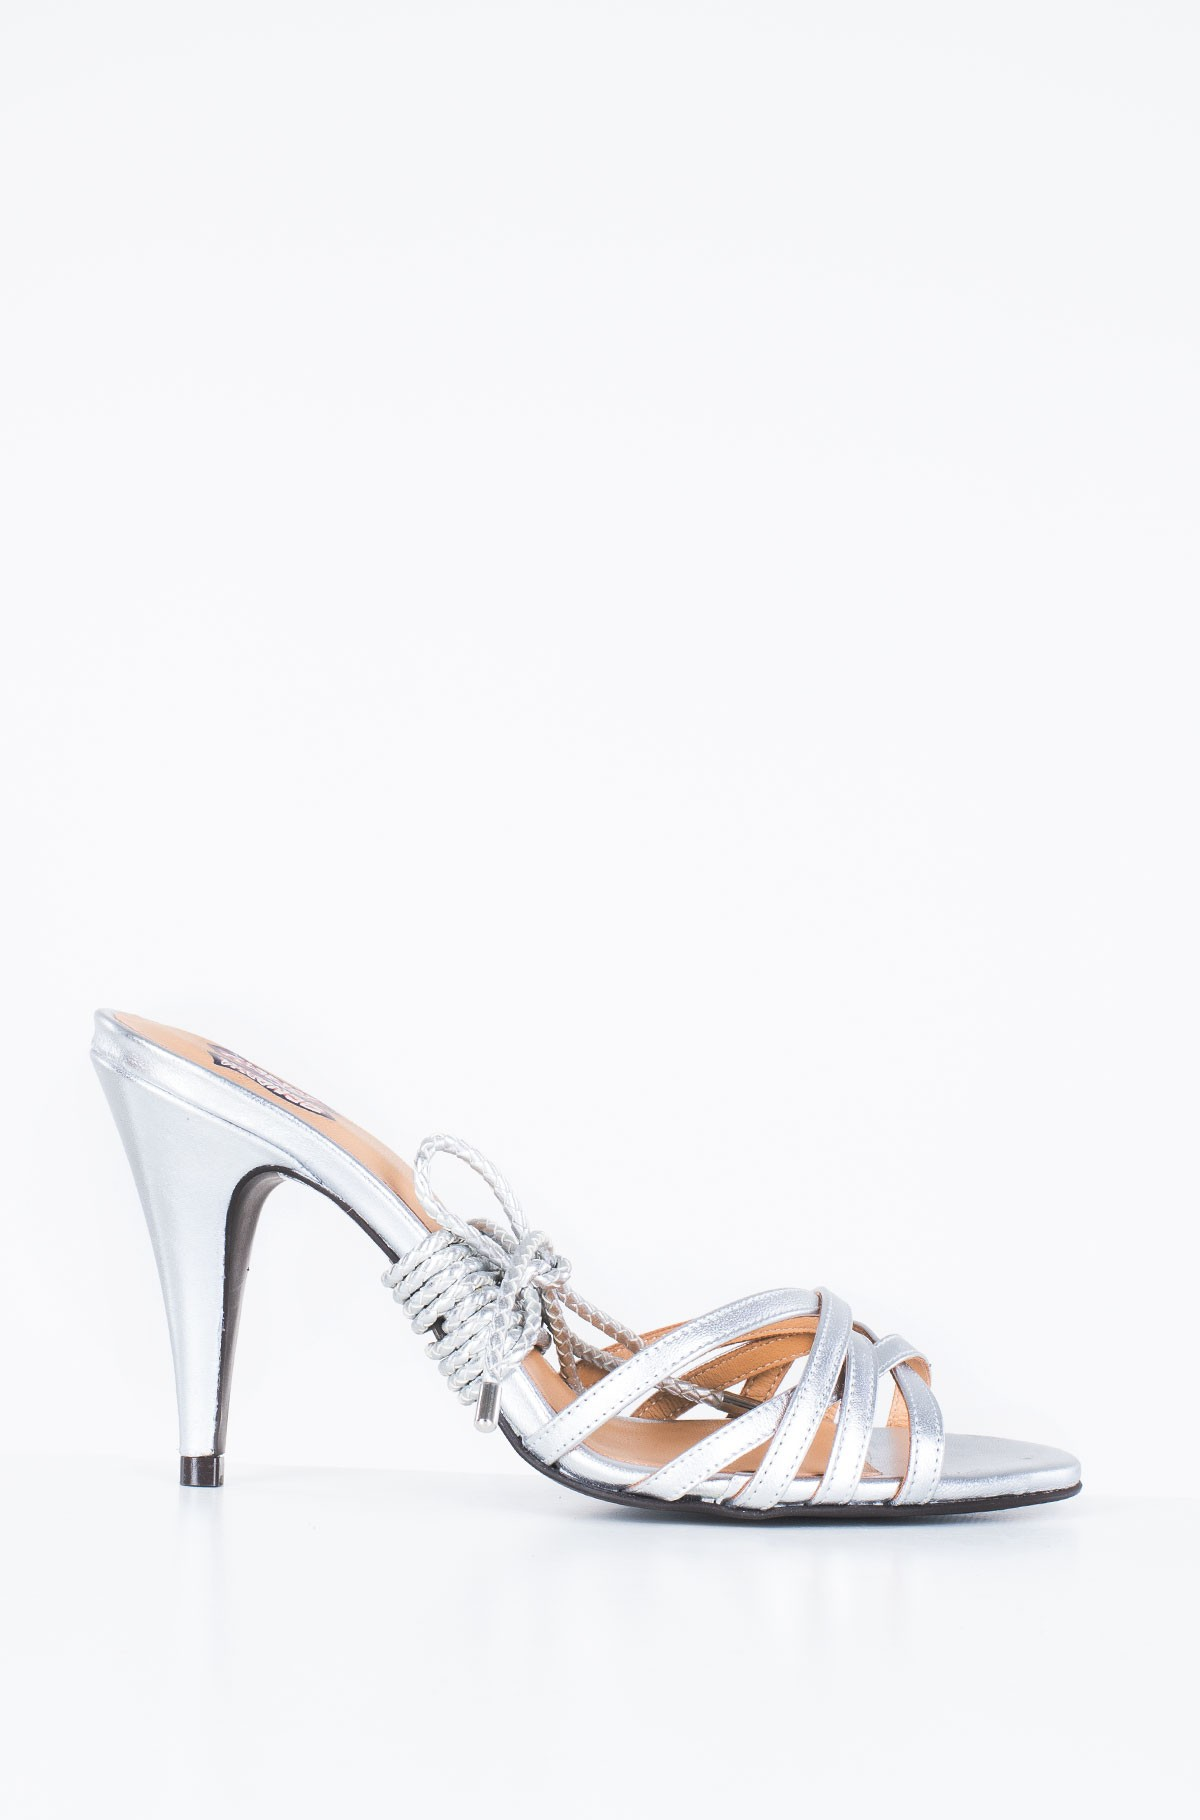 Batai ZENDAYA ELEVATED STRAPPY SANDAL-full-1